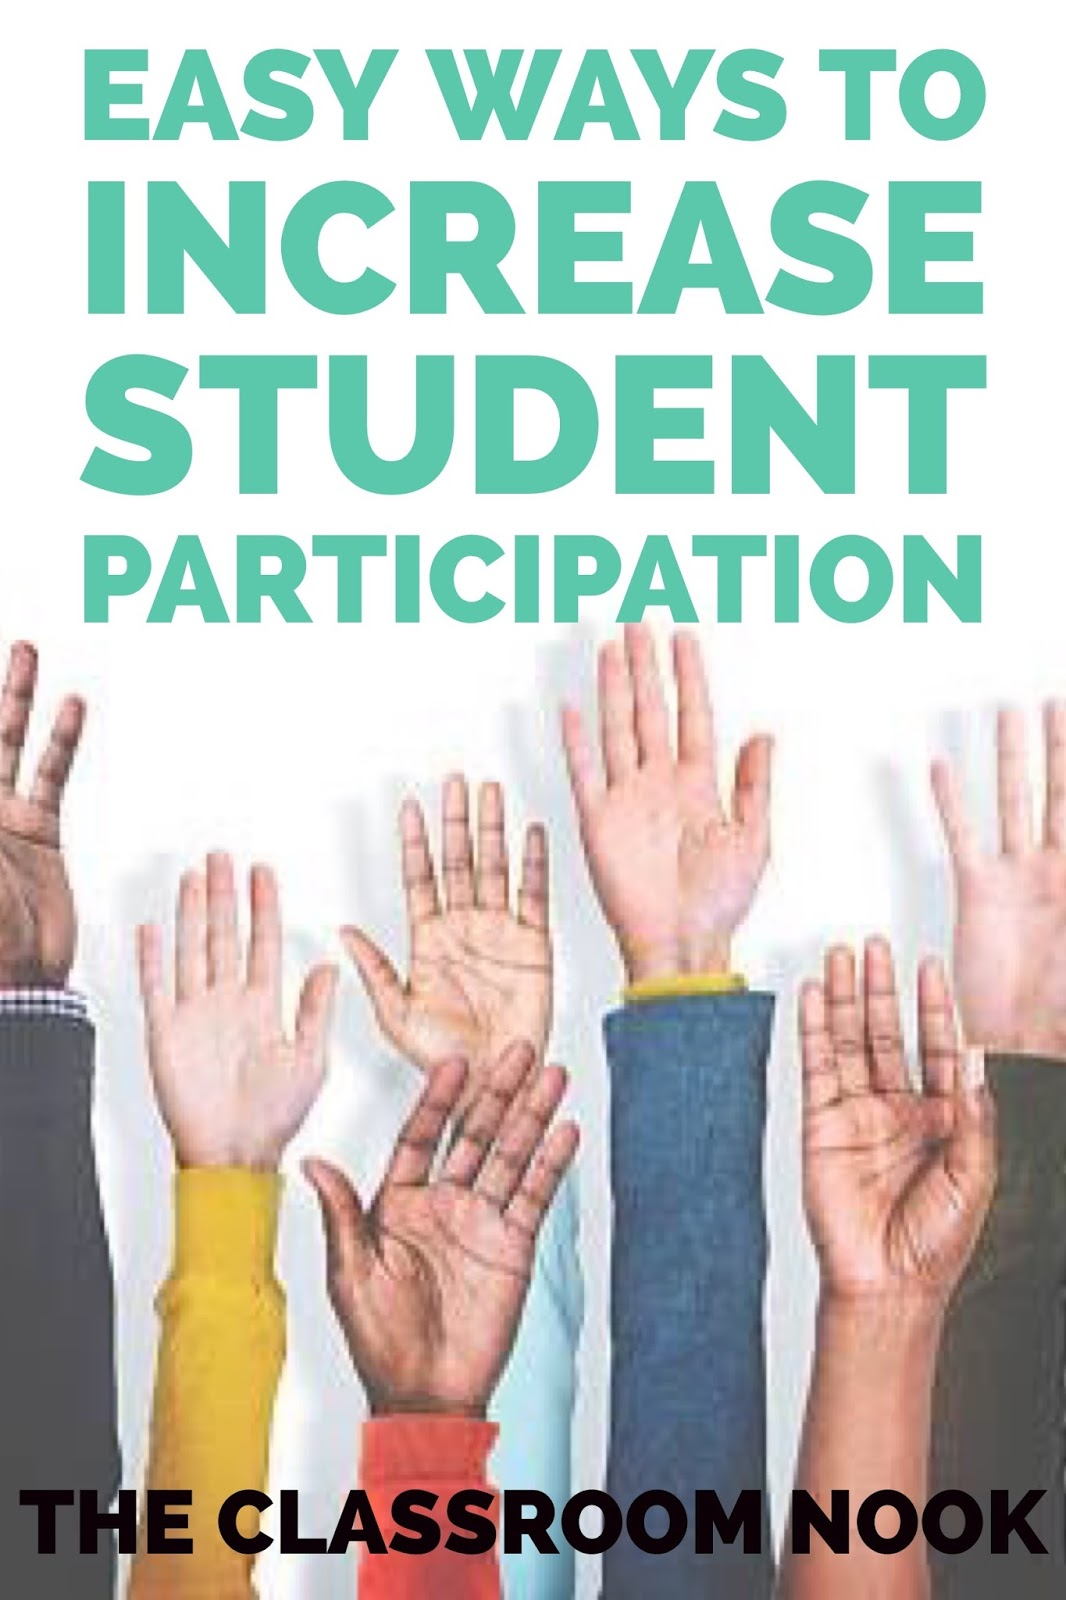 Check out this blog post with easy ways to increase student participation and build a stronger classroom community! #classroomcommunity #studentparticipation #classroommanagement